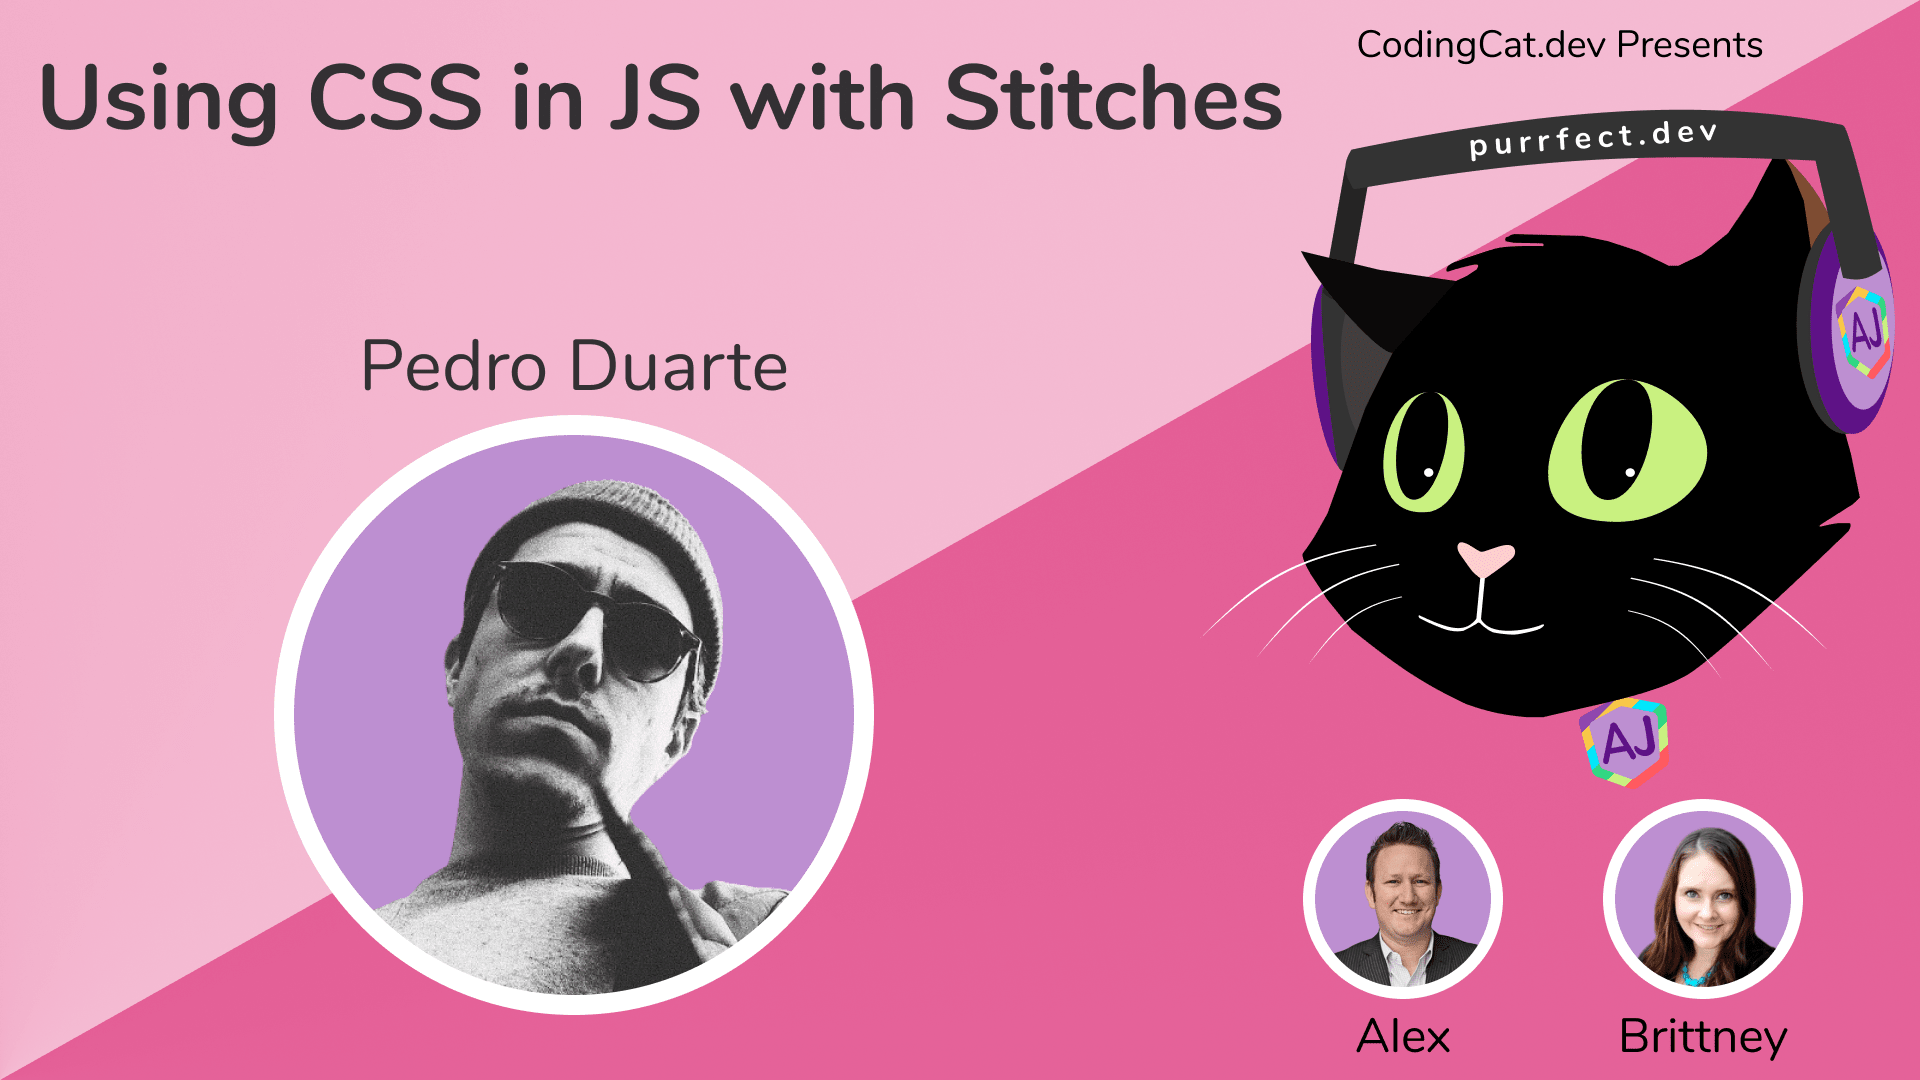 1.29 - Using CSS in JS with Stitches